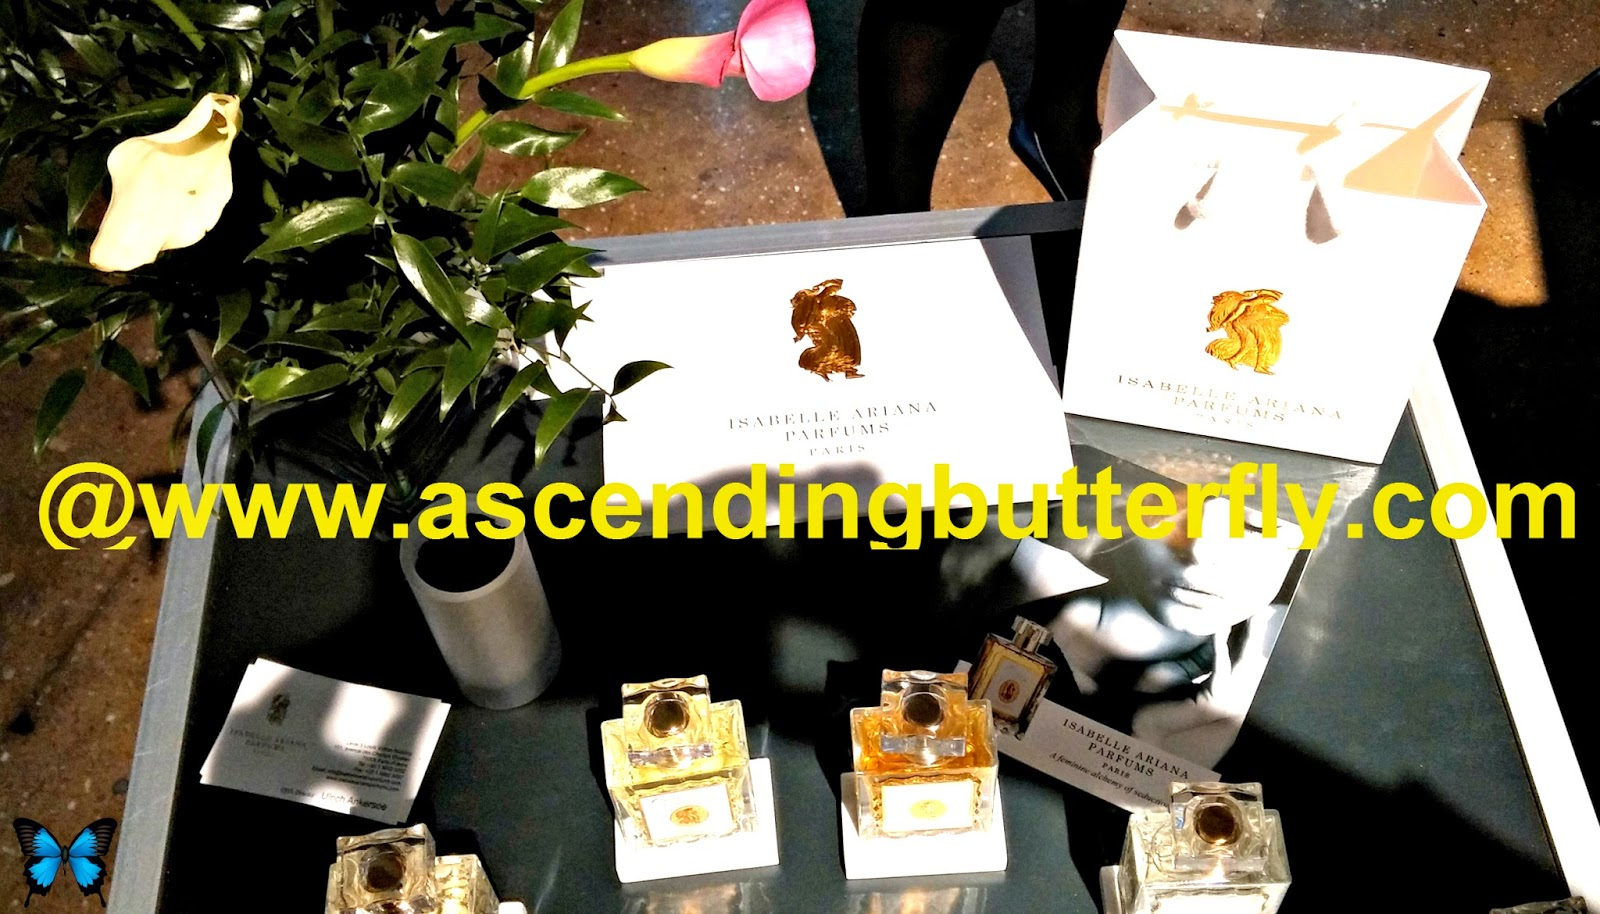 Isabelle Ariana Parfums Paris display at Elements Showcase